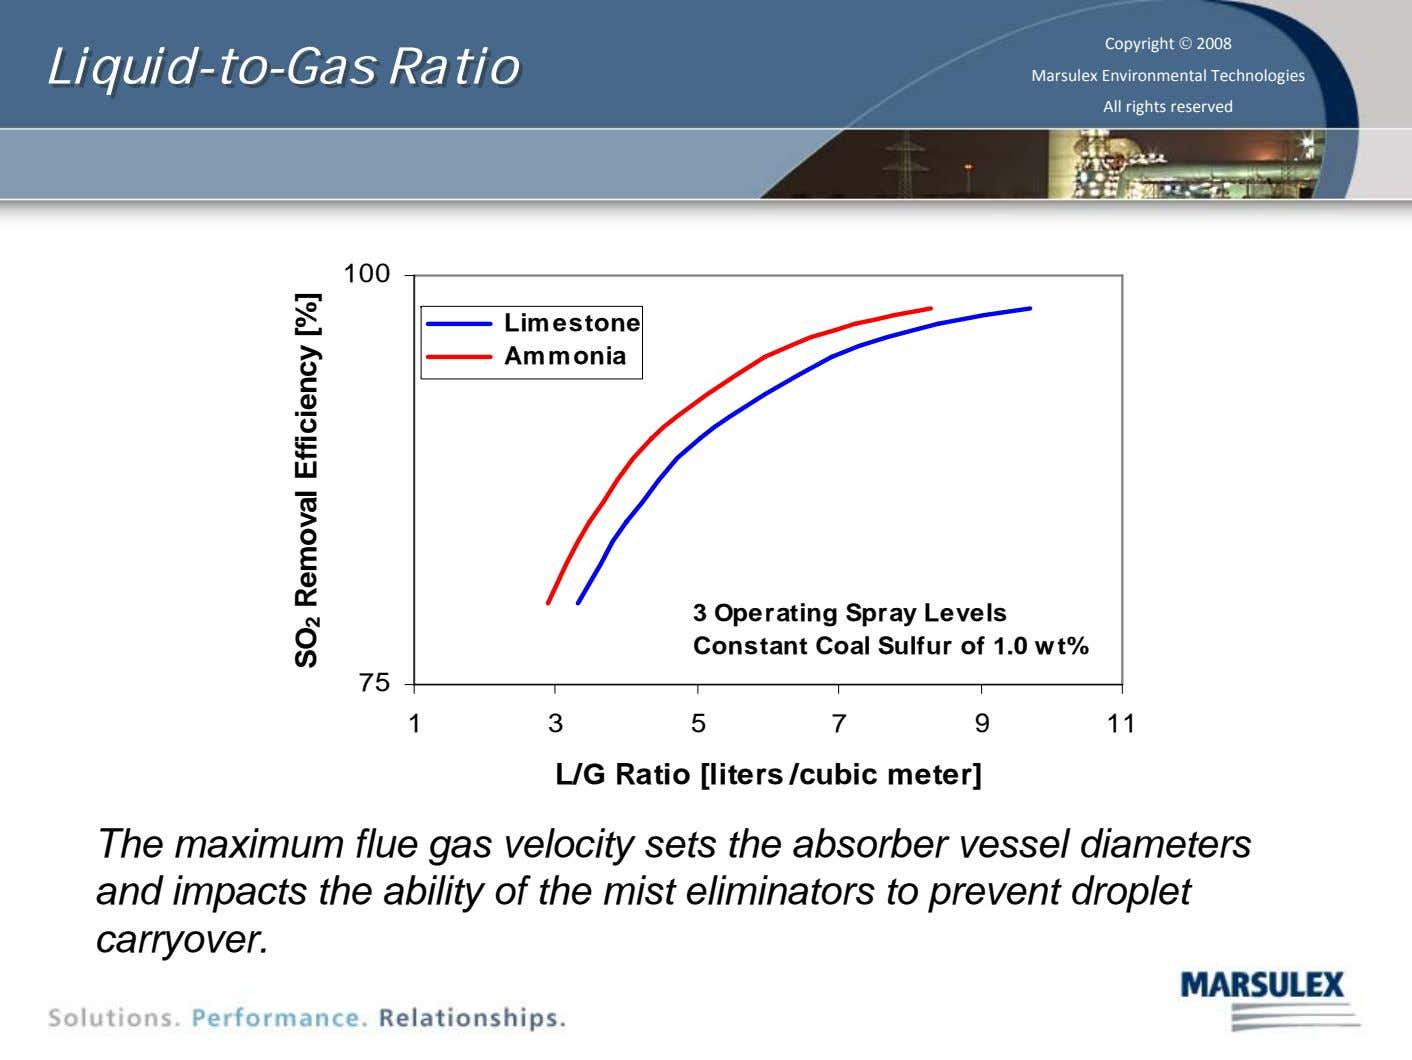 Liquid-to-Gas Liquid-to-Gas Ratio Ratio Copyright © 2008 Marsulex Environmental Technologies All rights reserved 100 Limestone Ammonia